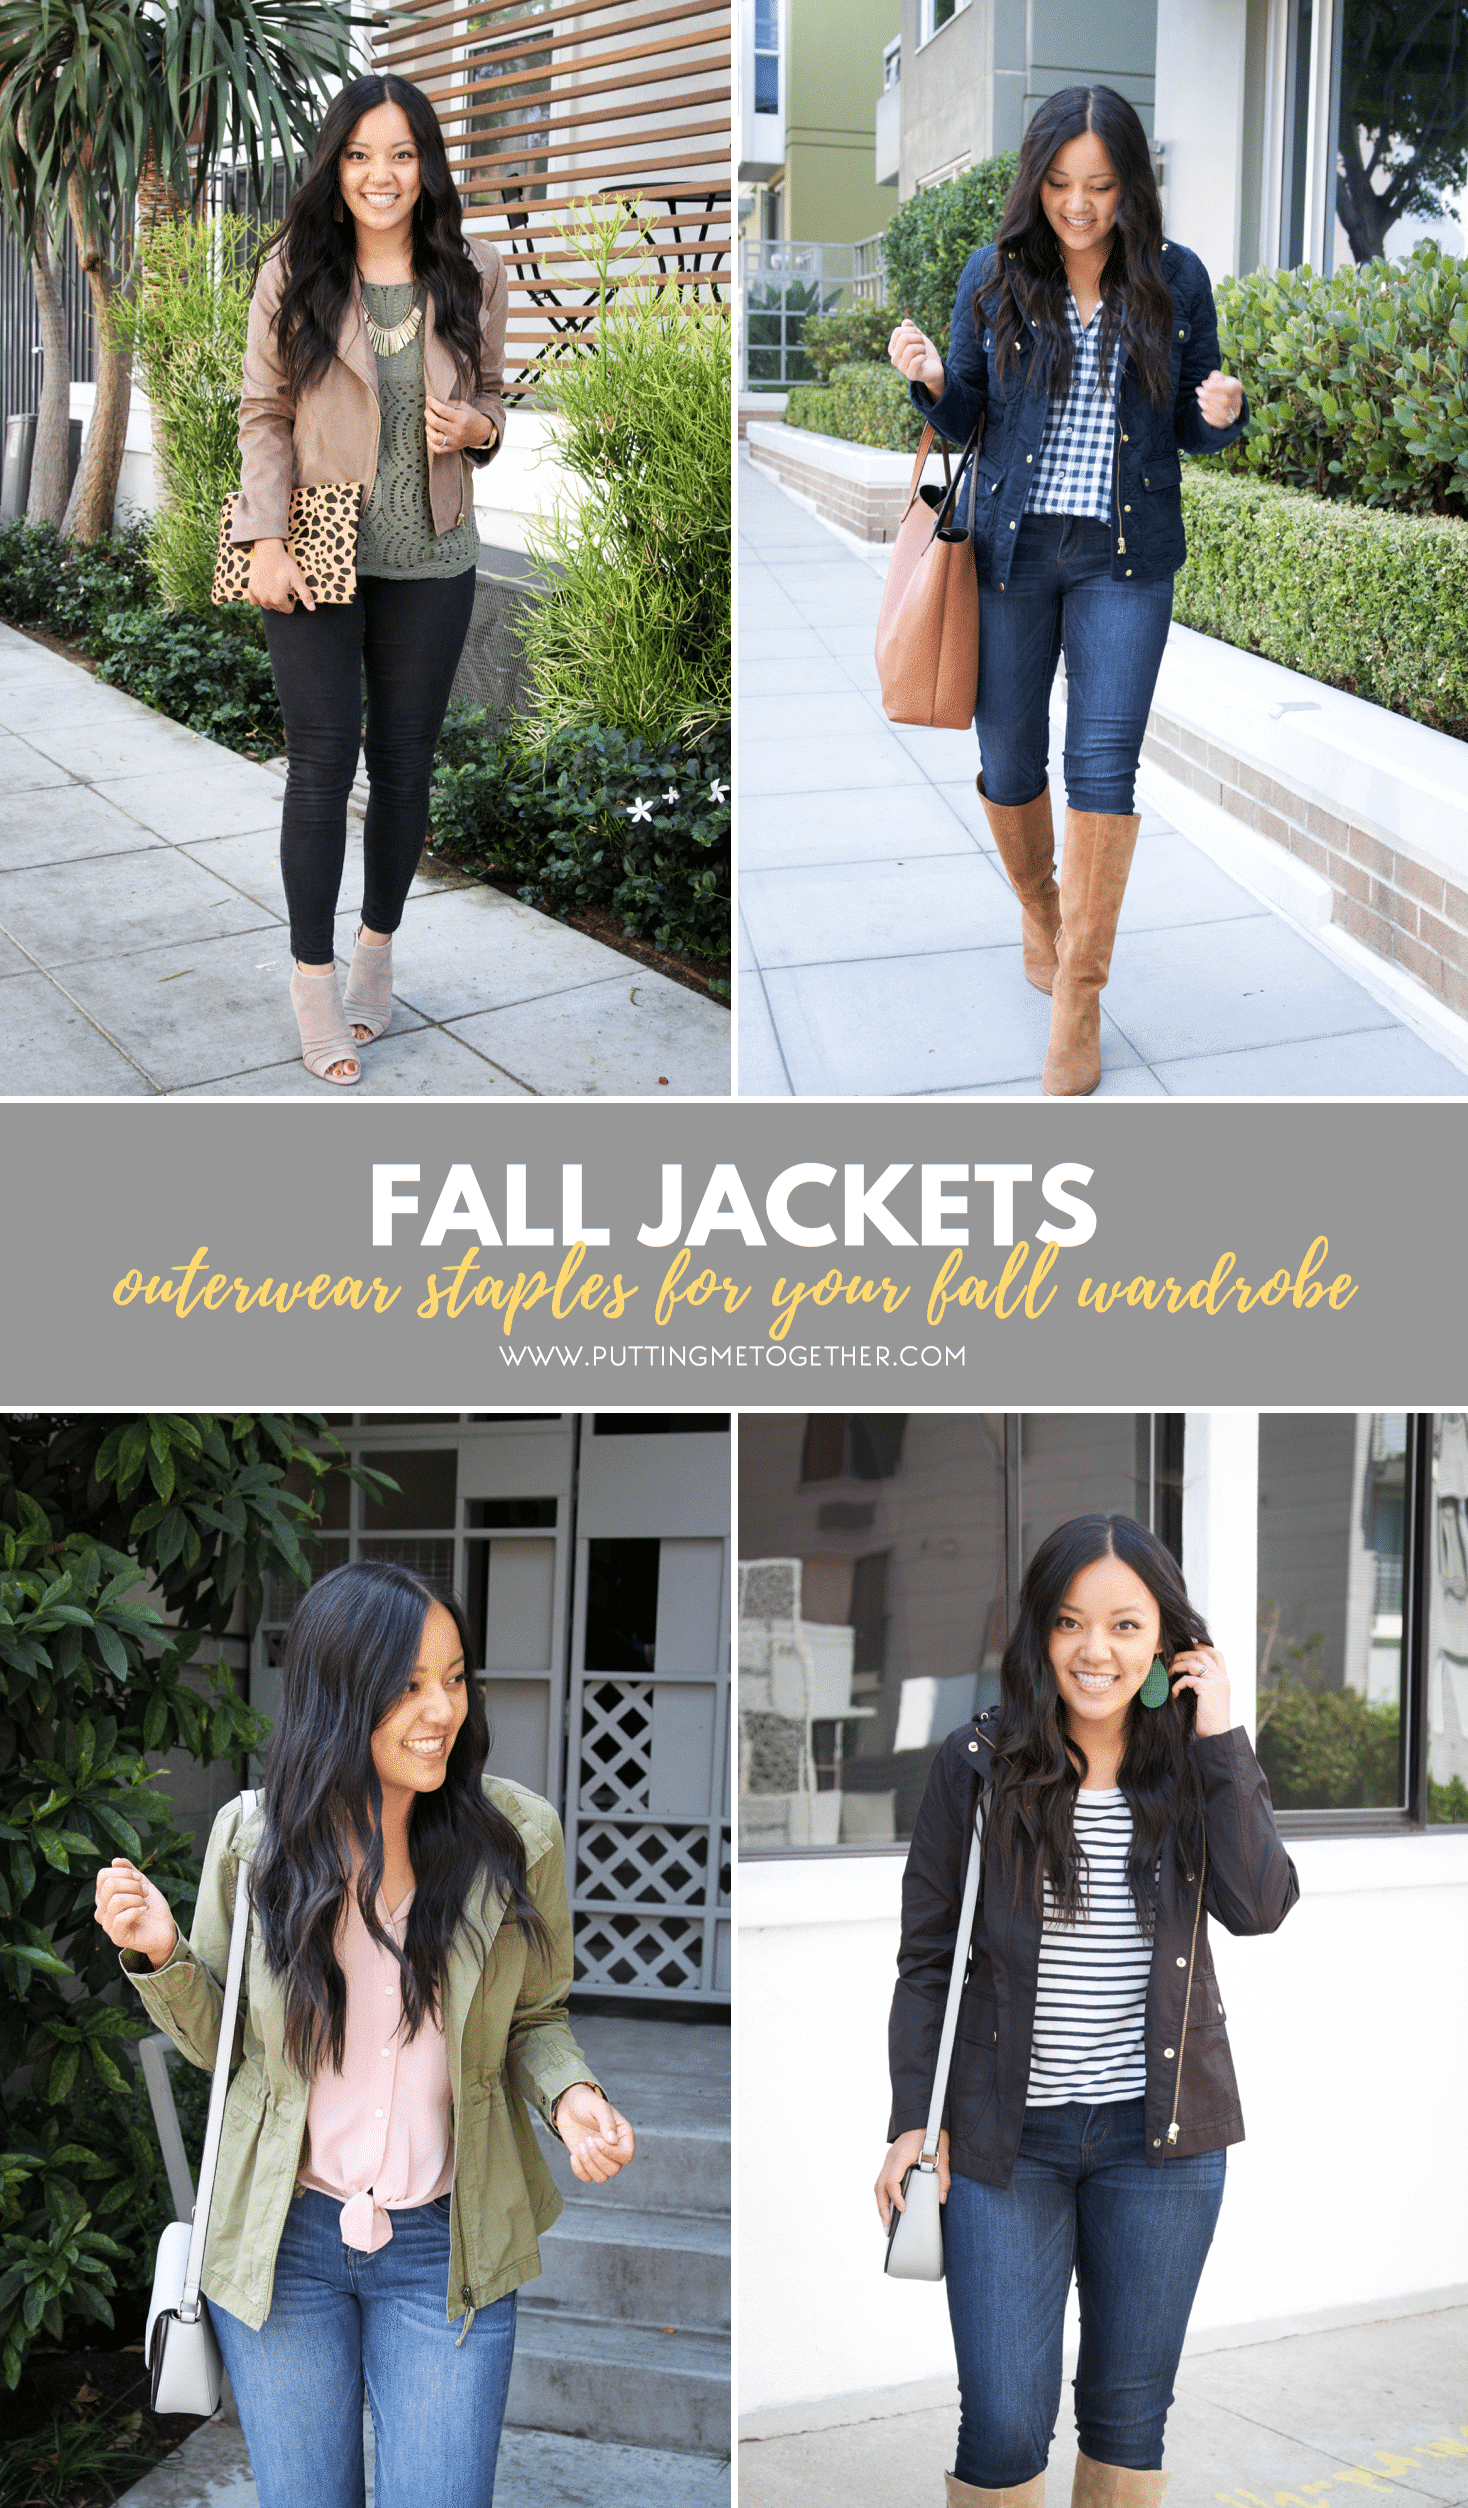 Four of My Favorite Types of Fall Jackets